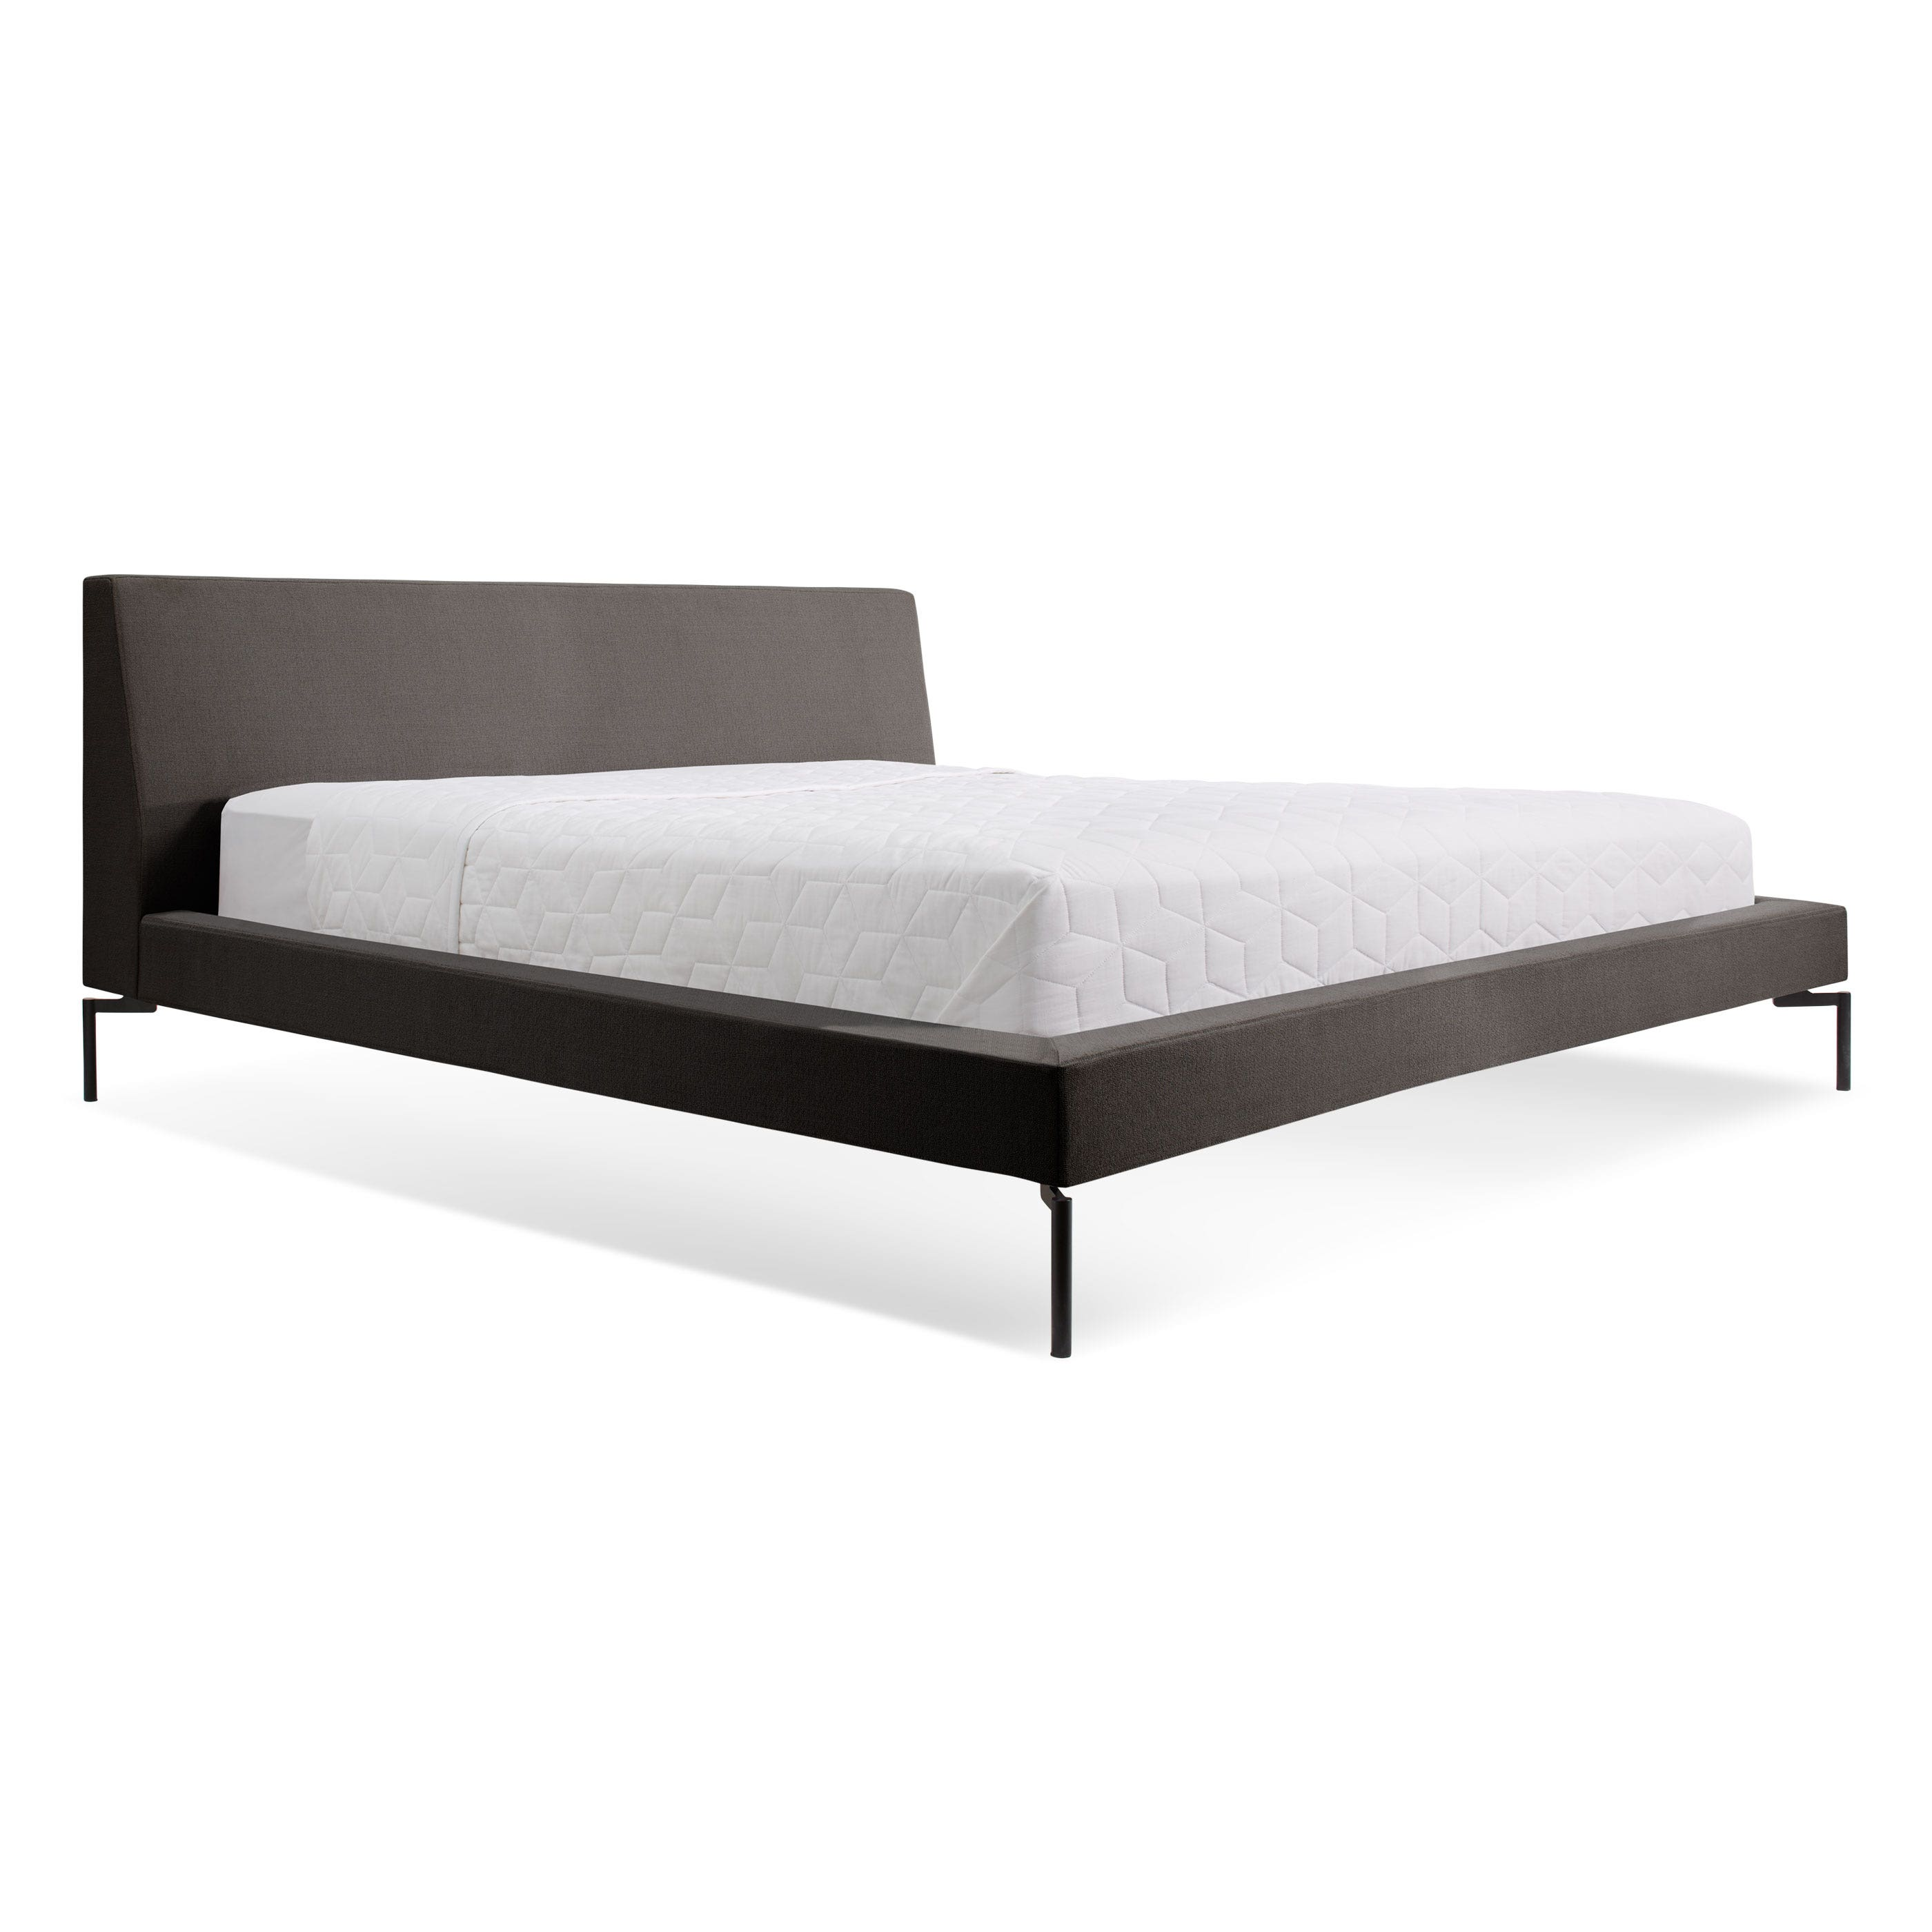 previous image new standard black king bedframe with black legs